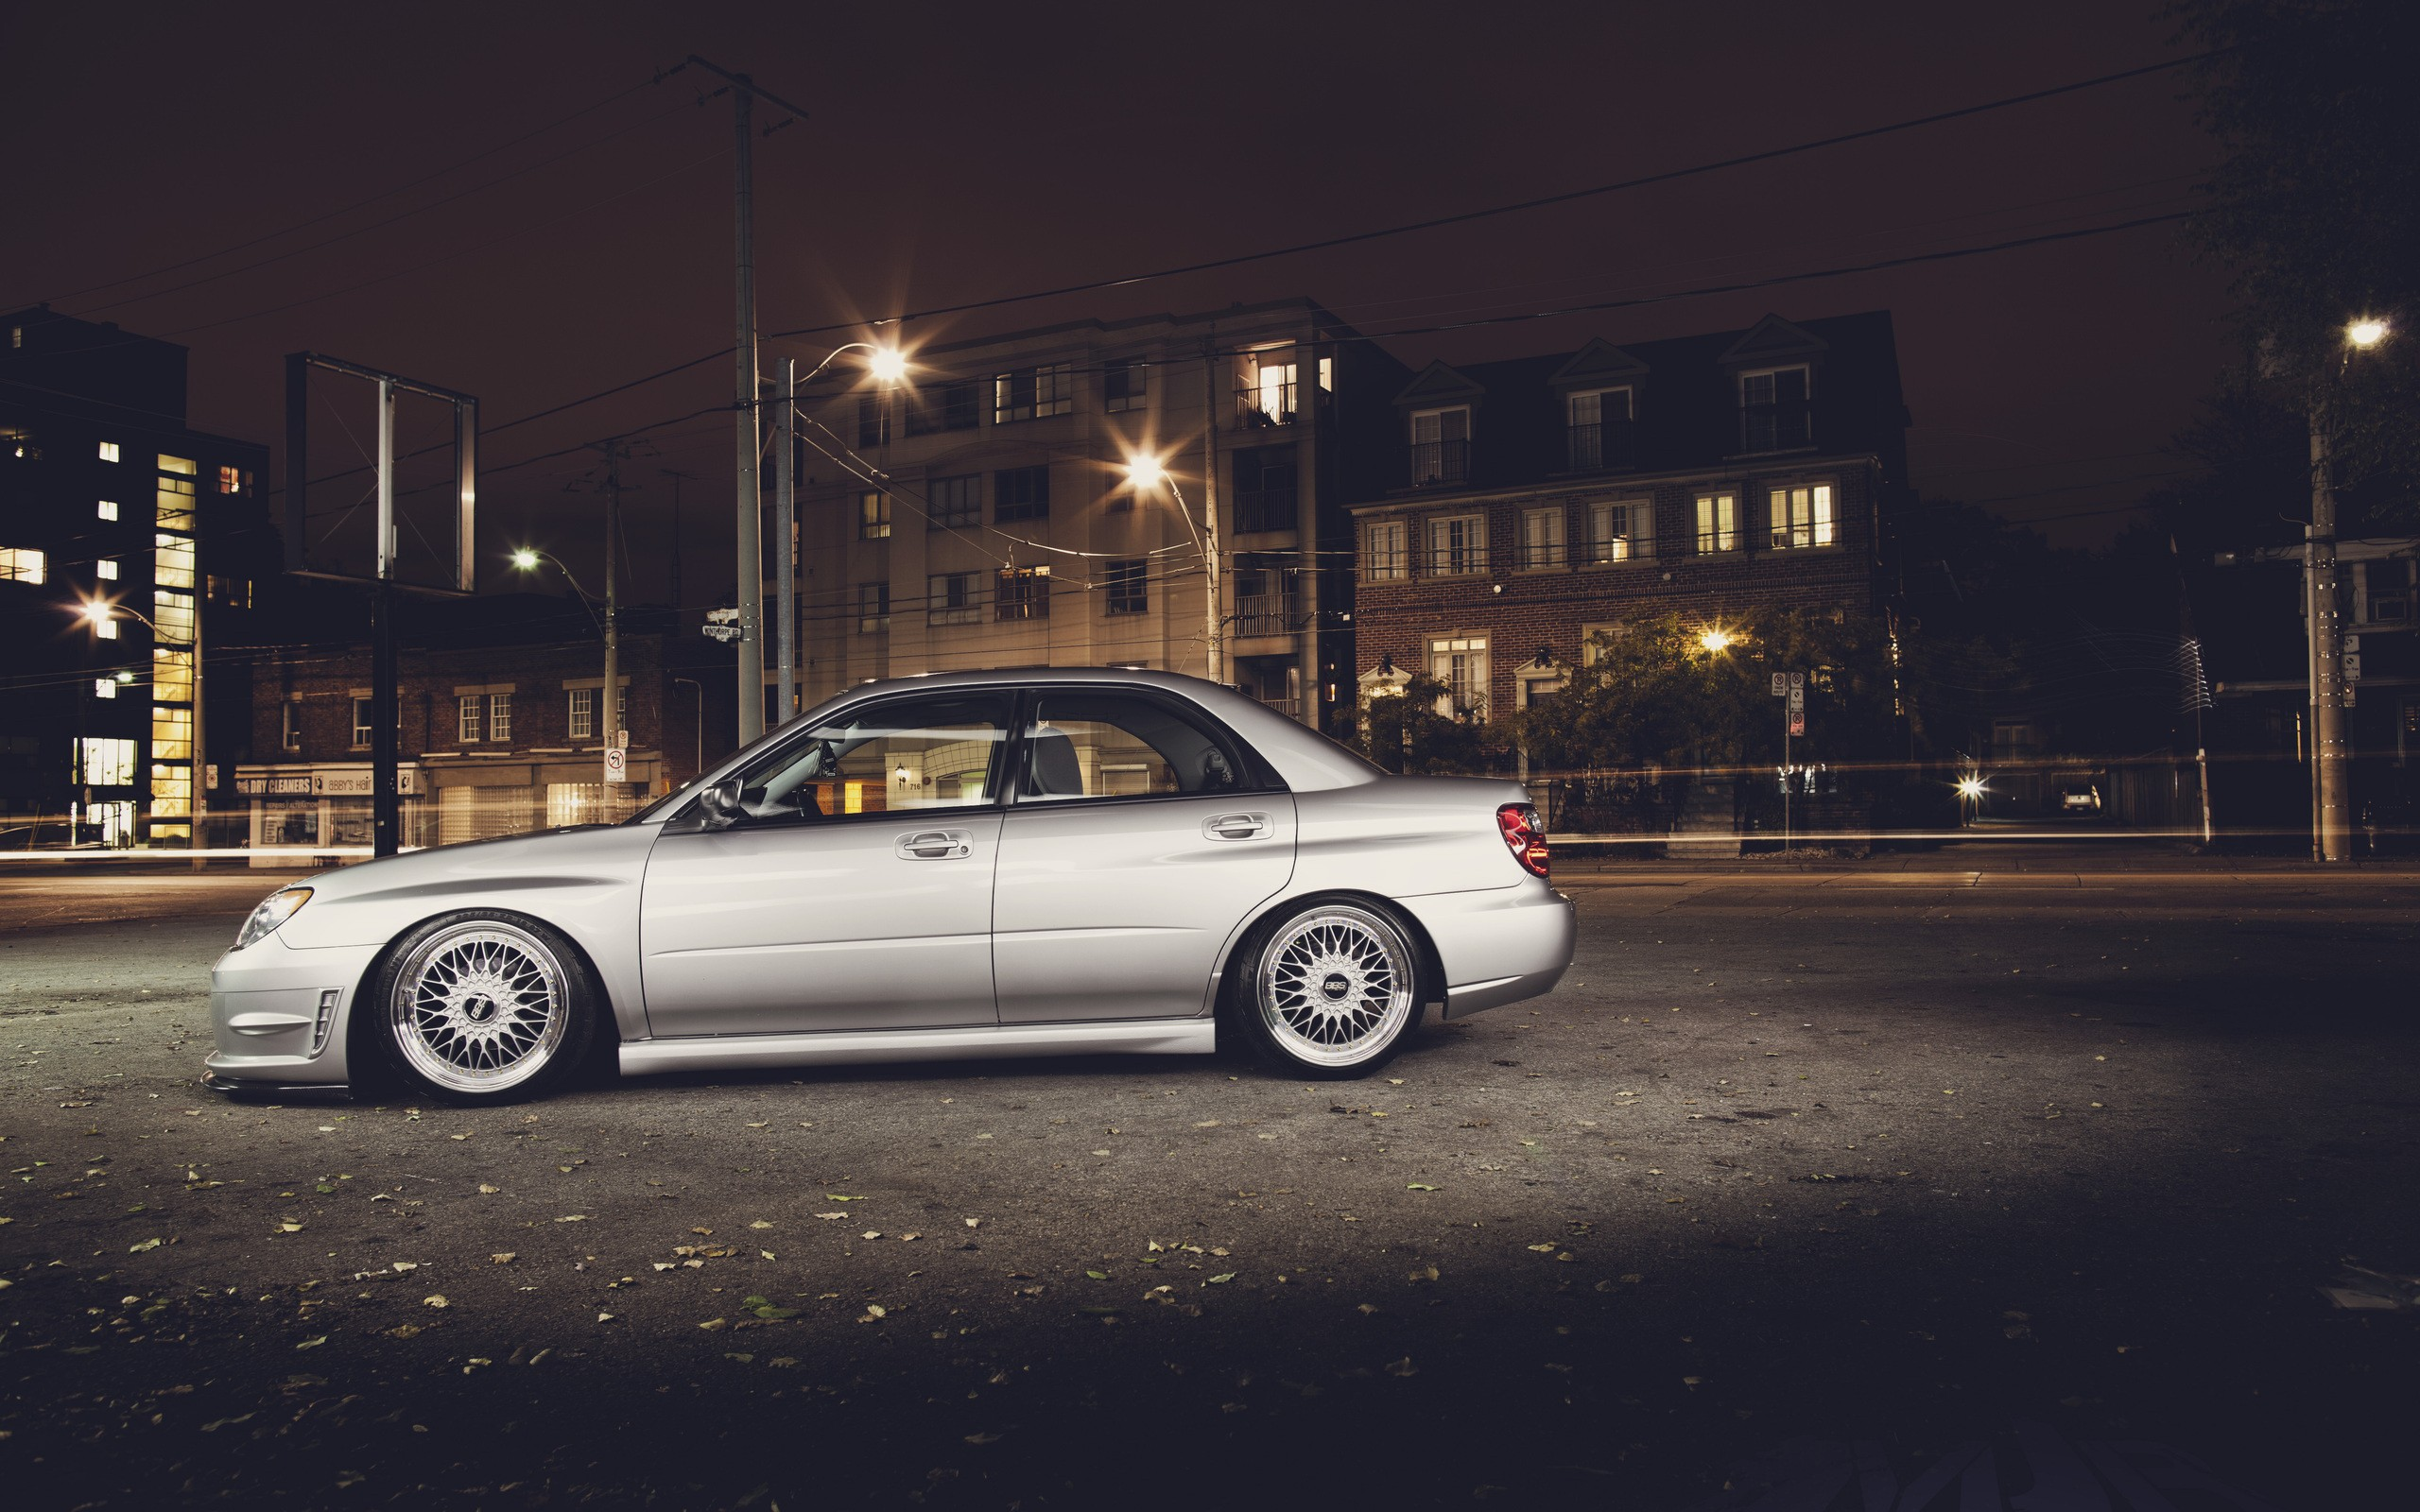 Background Car Hd Wallpapers Cities: Stanced Car Wallpapers